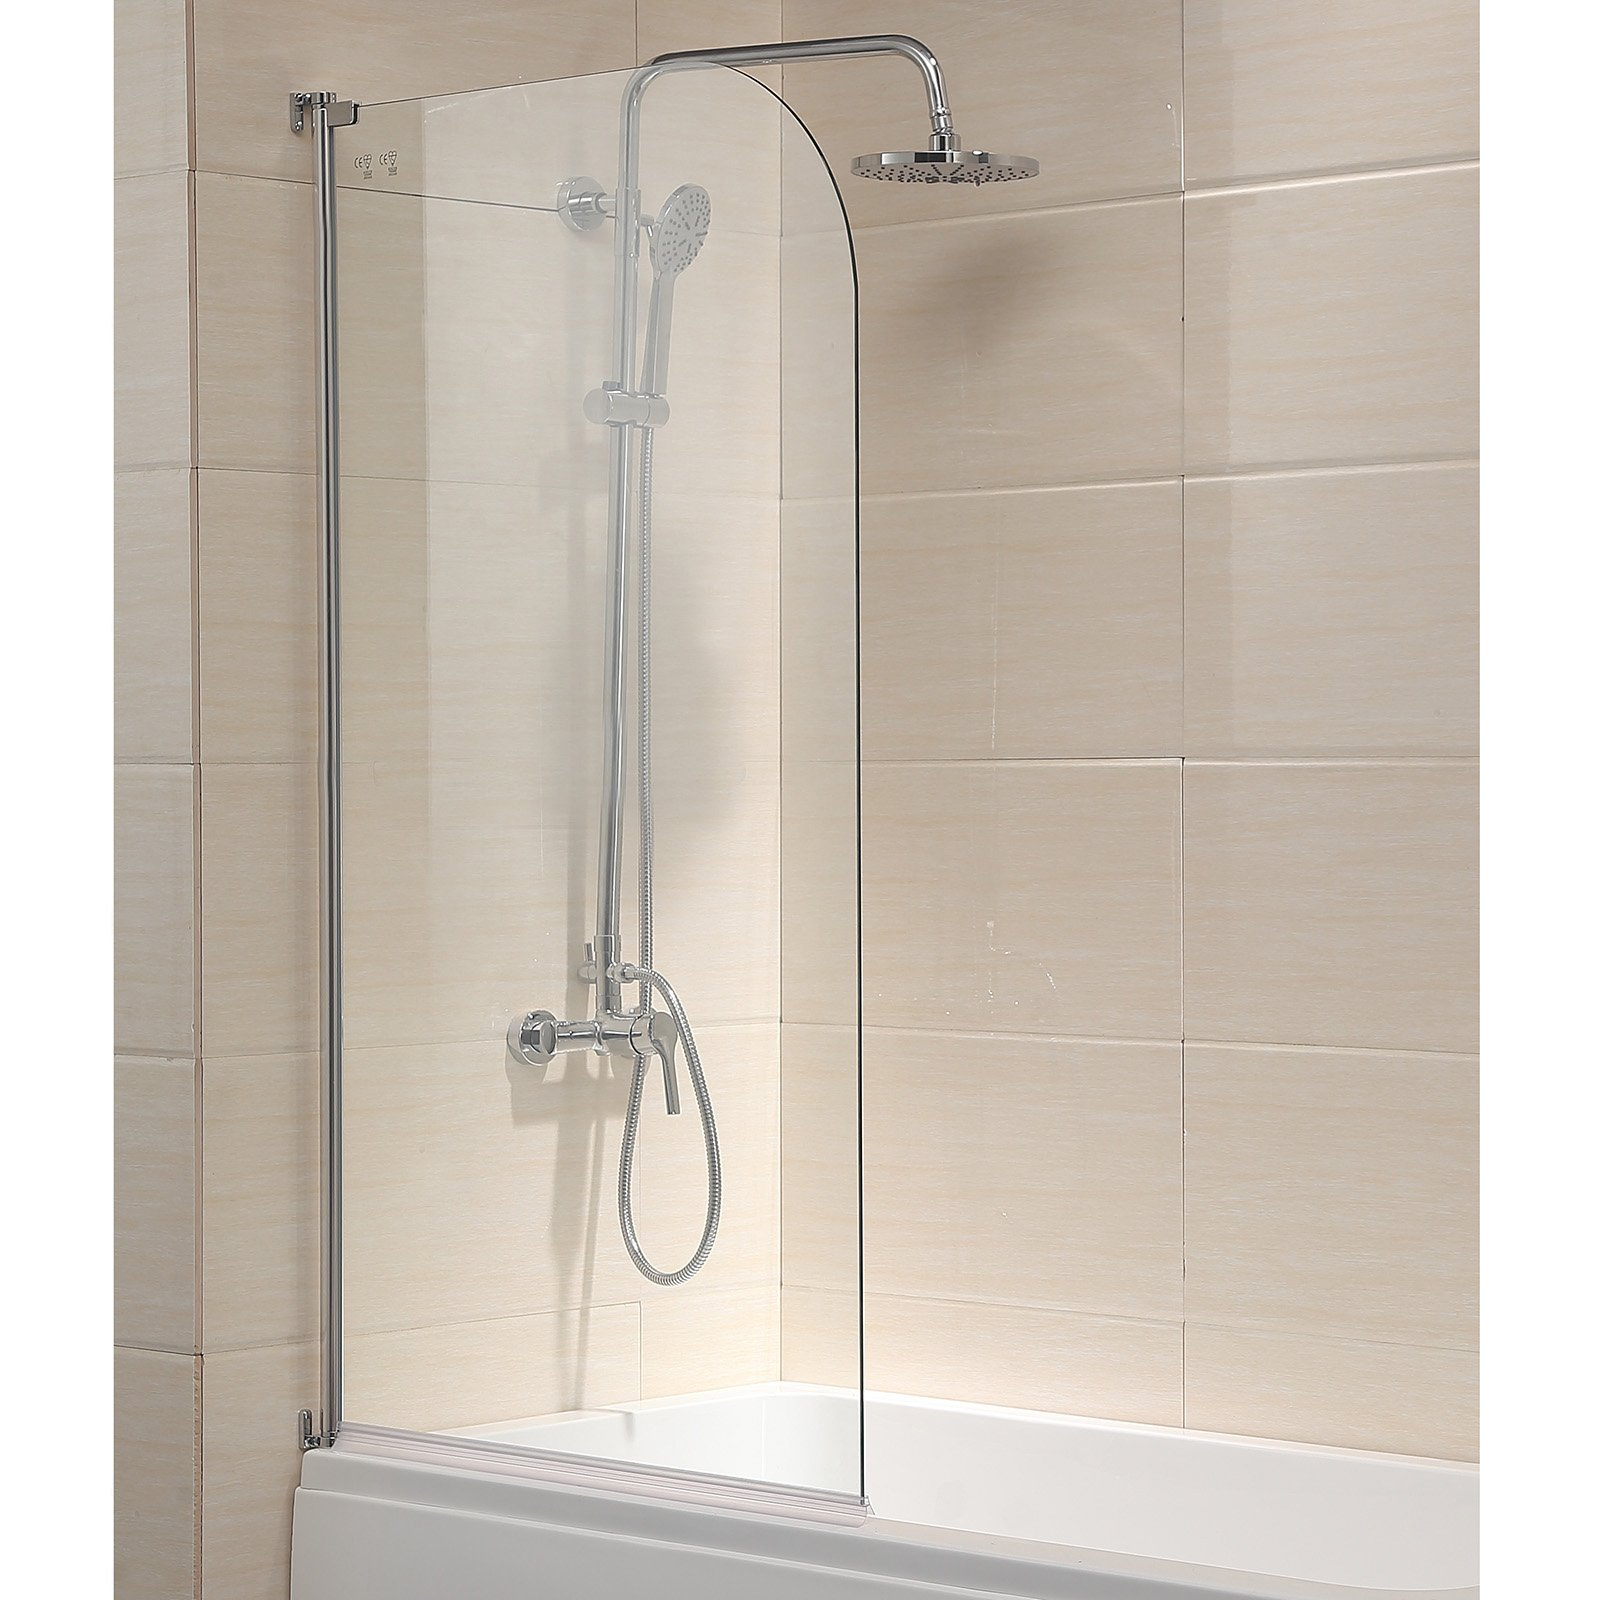 Mecor 55''X31'' Bathtub Shower Door 1/4'' Clear Glass Hinged Pivot Radius Frameless Chrome Finish